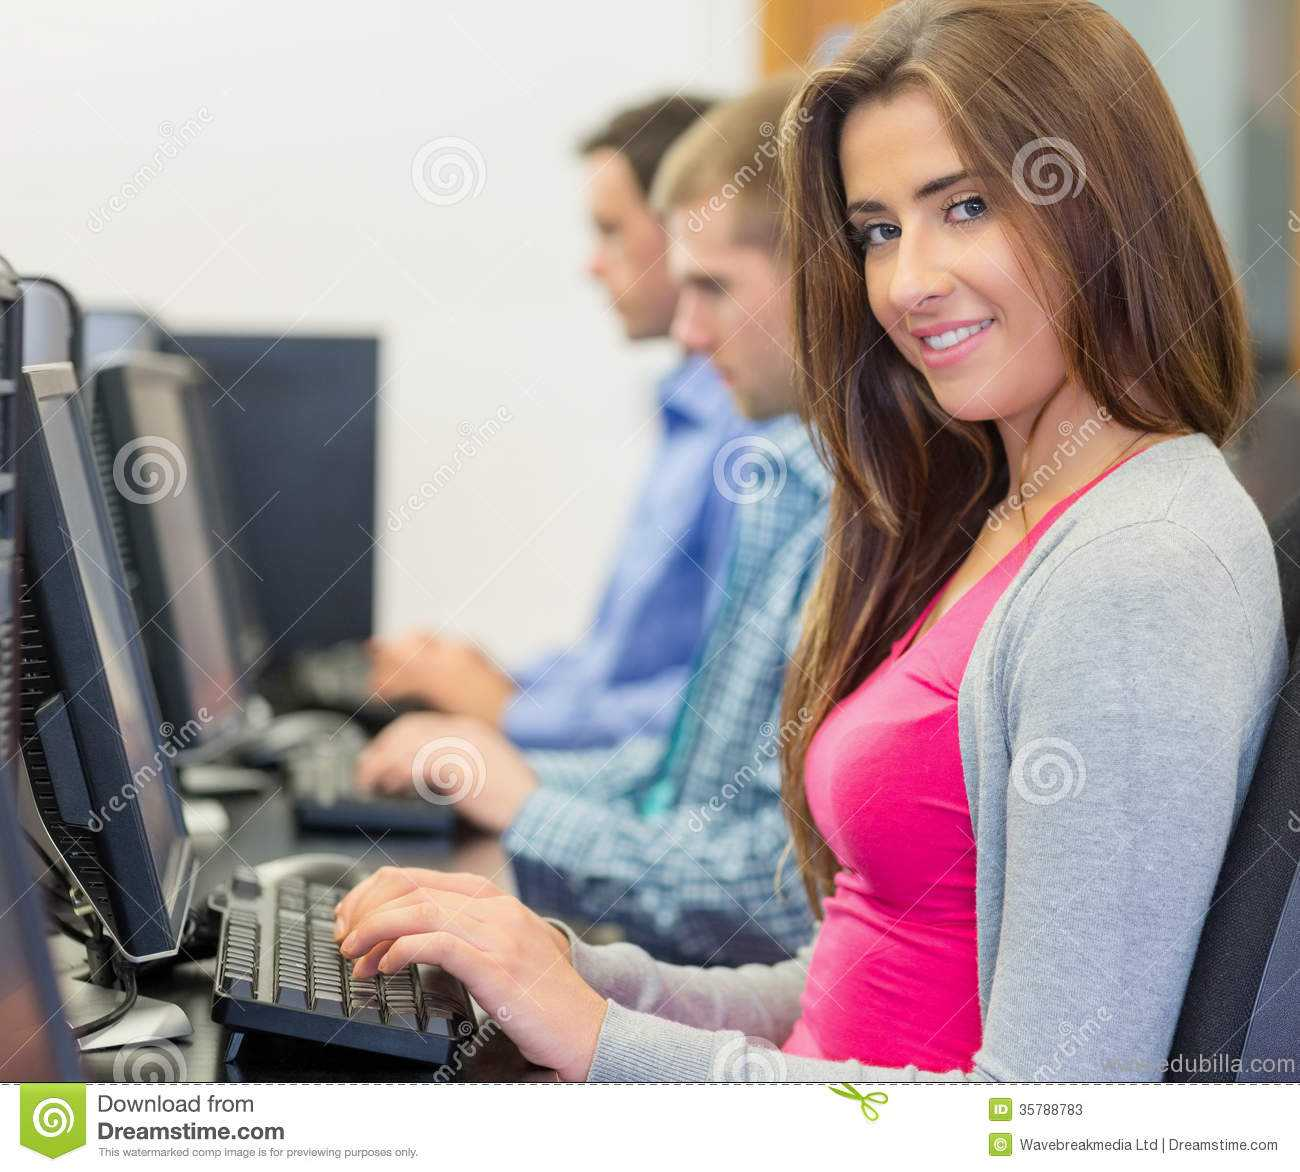 students-using-computers-computer-room-side-view-young-35788783.jpg